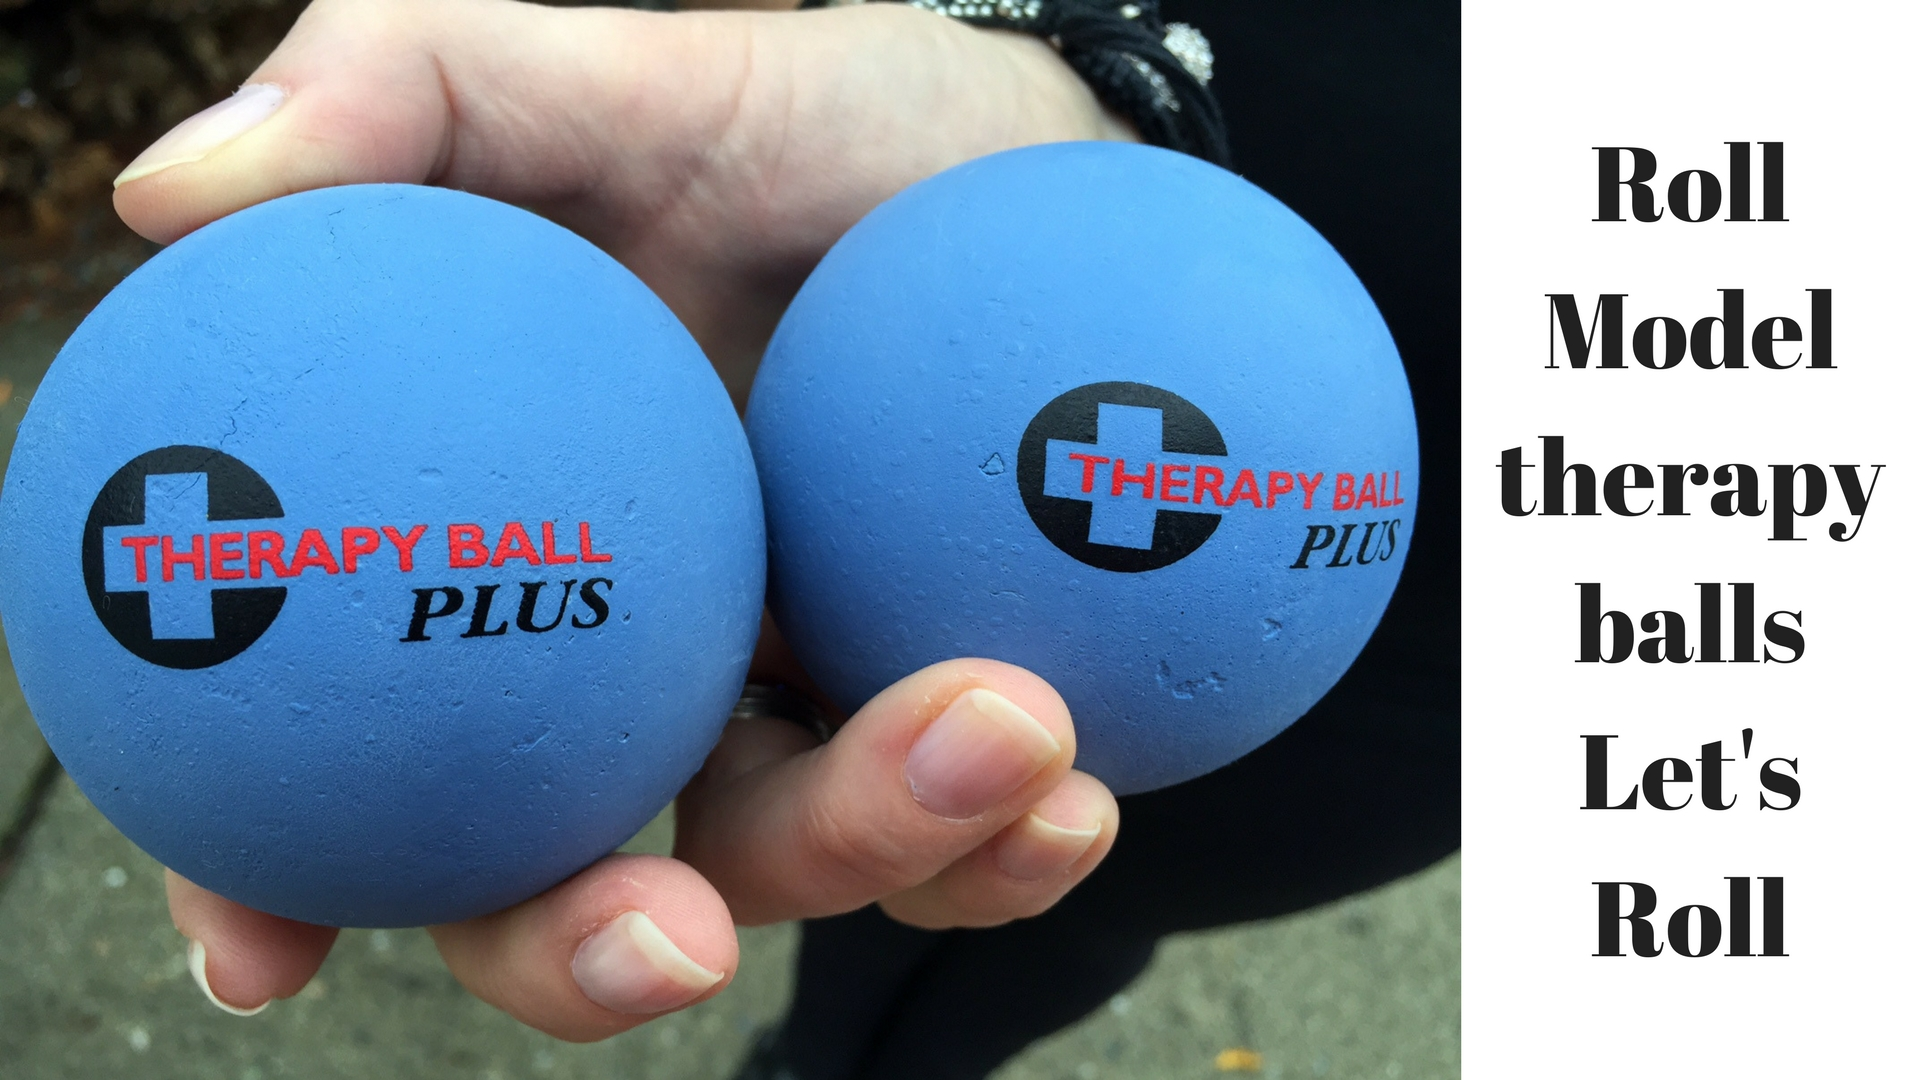 Roll Model Therapy Balls let's roll.jpg